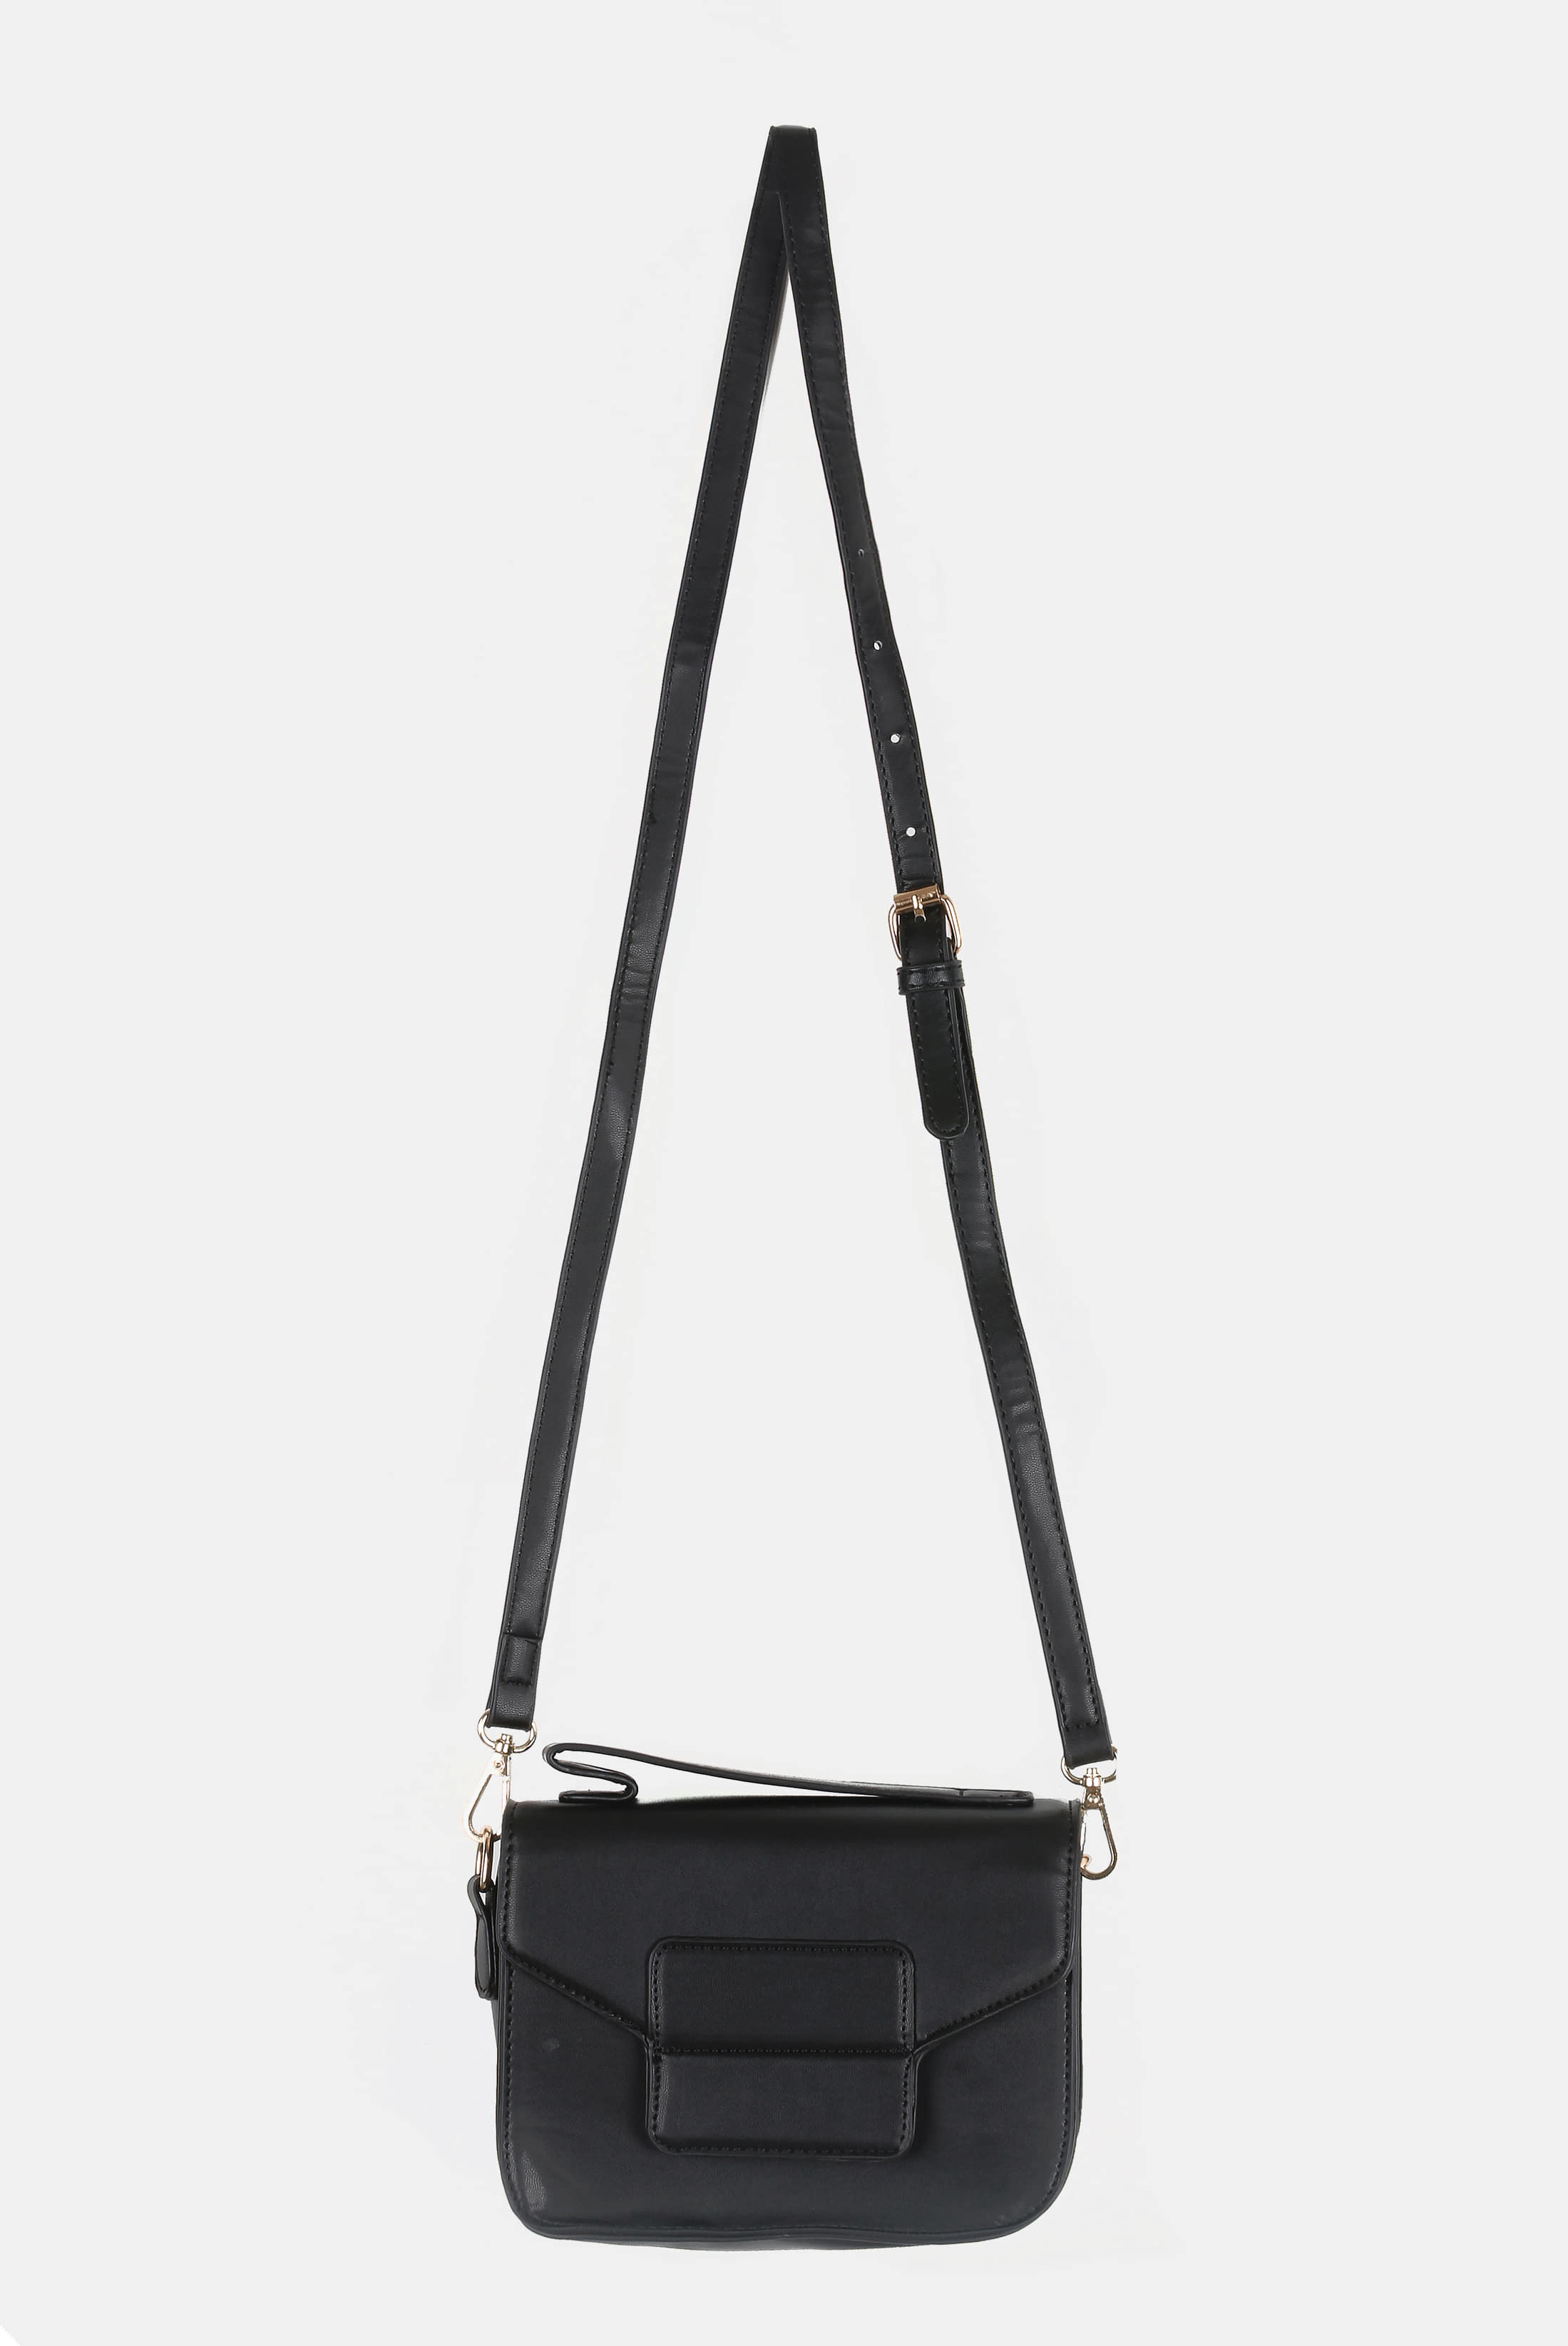 Square_Angled Leather Bag